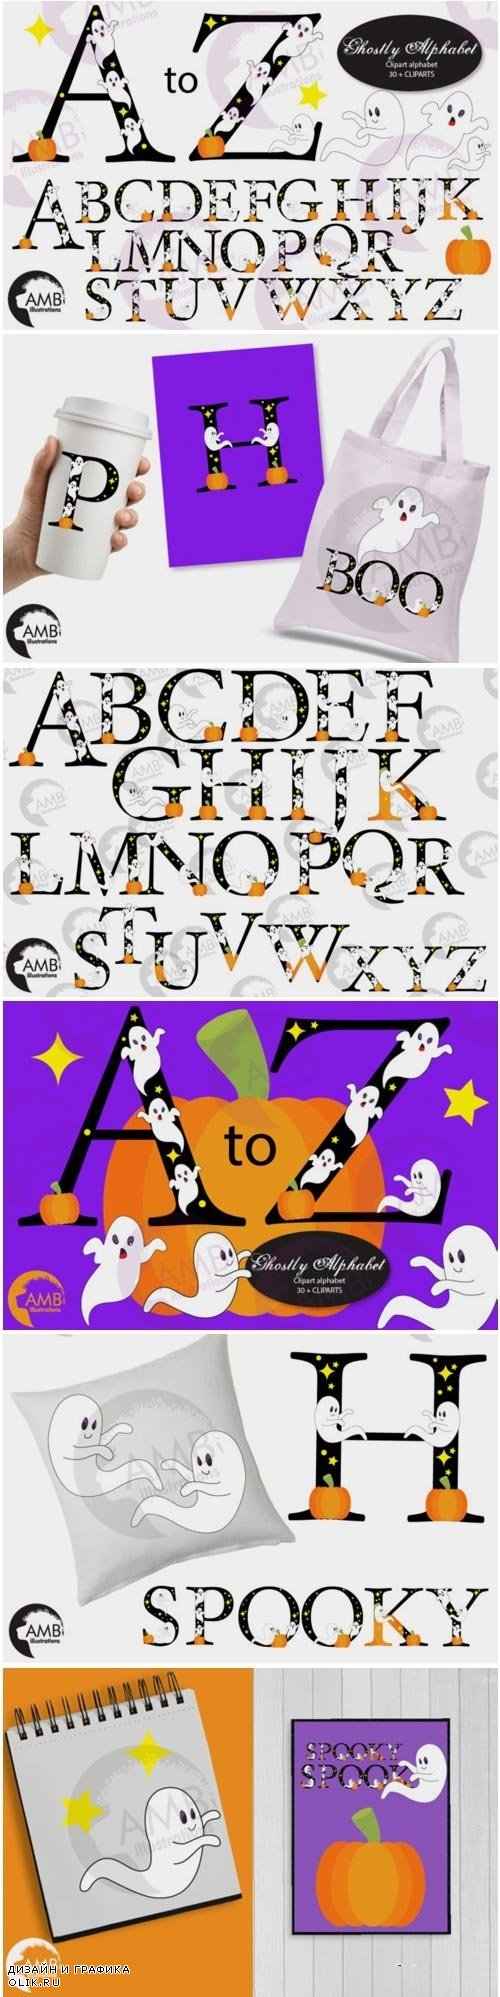 Ghostly alphabet clipart AMB-2643 - 4069616